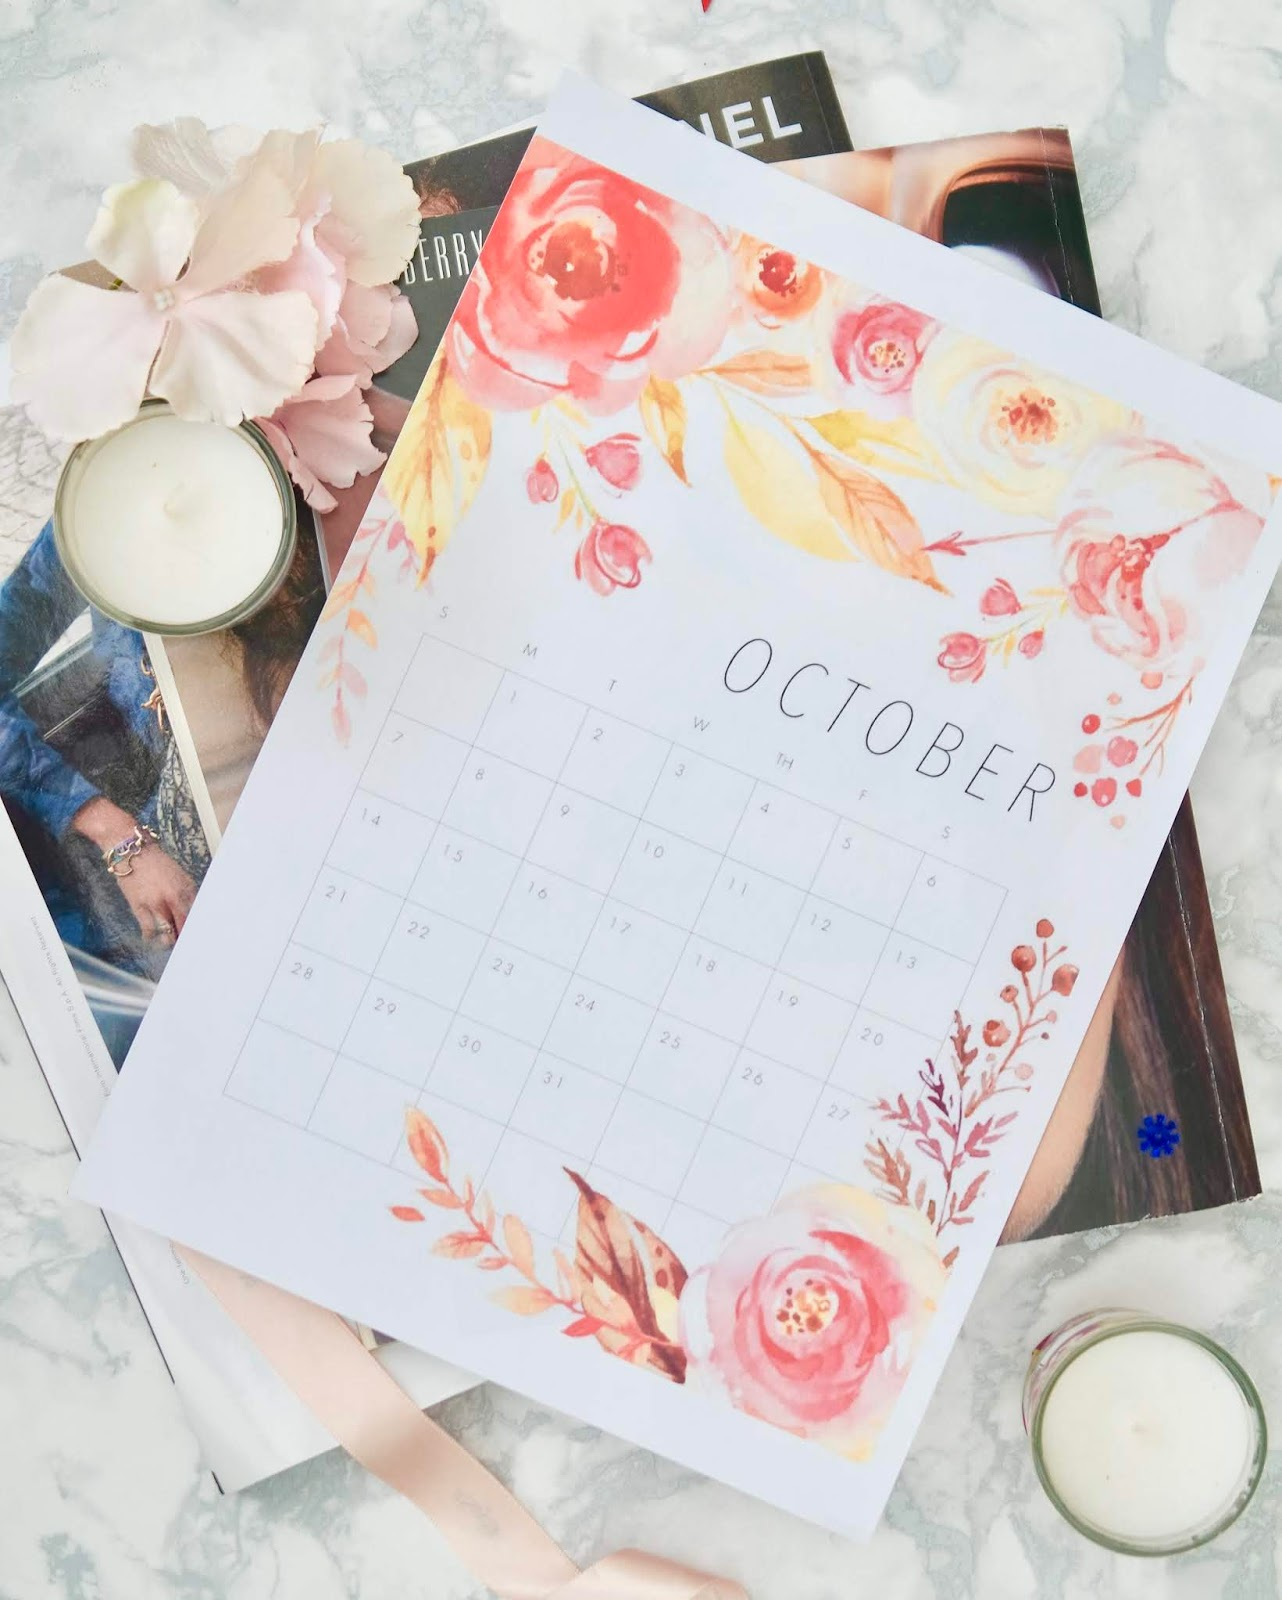 October 2018 - A Month Of New Beginnings